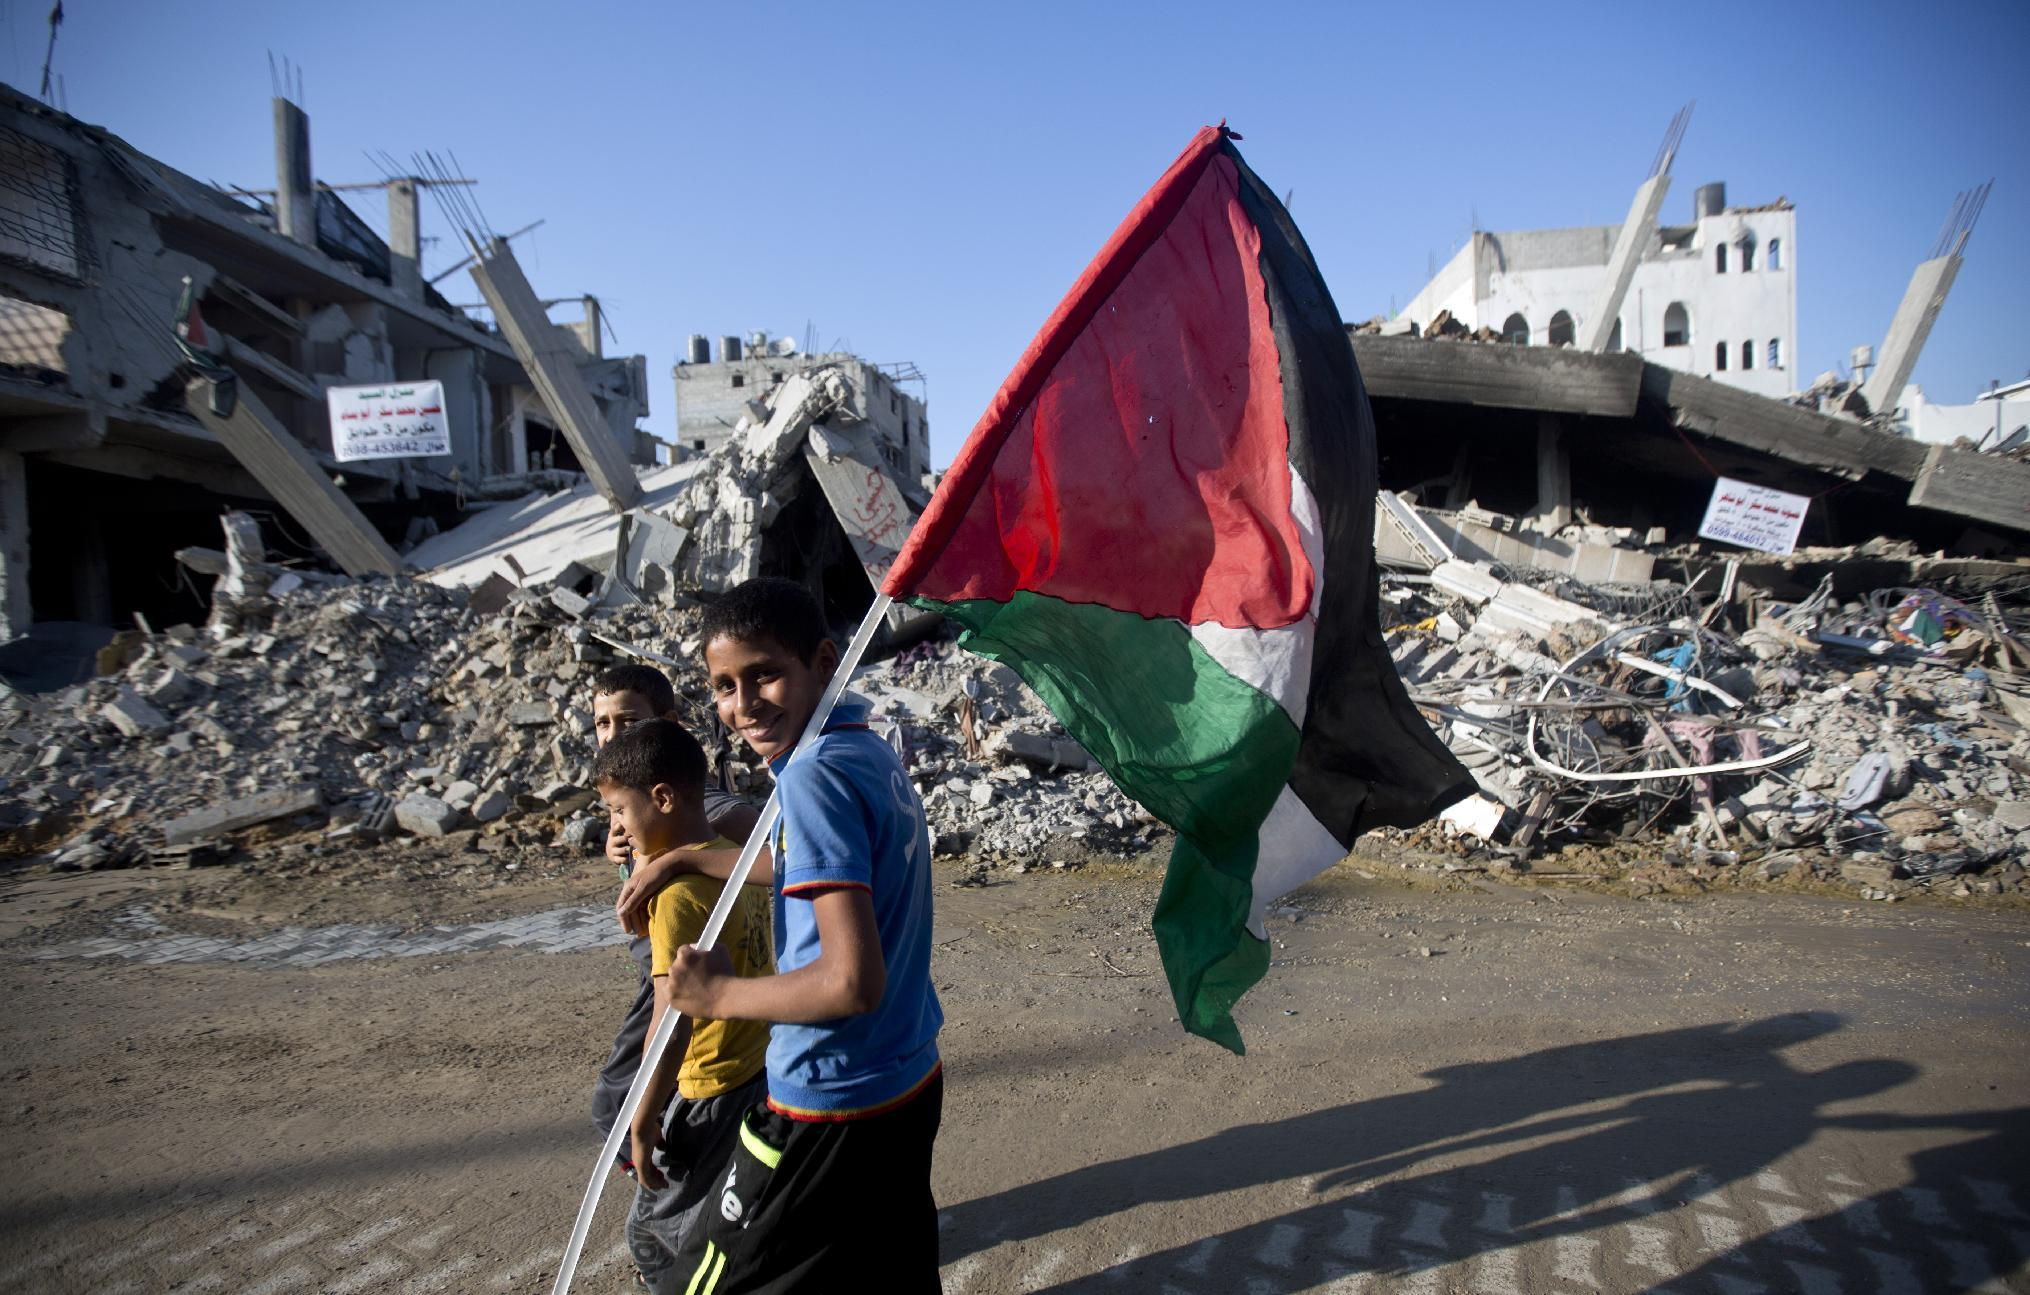 UN will 'take time' to decide on Palestinian resolution